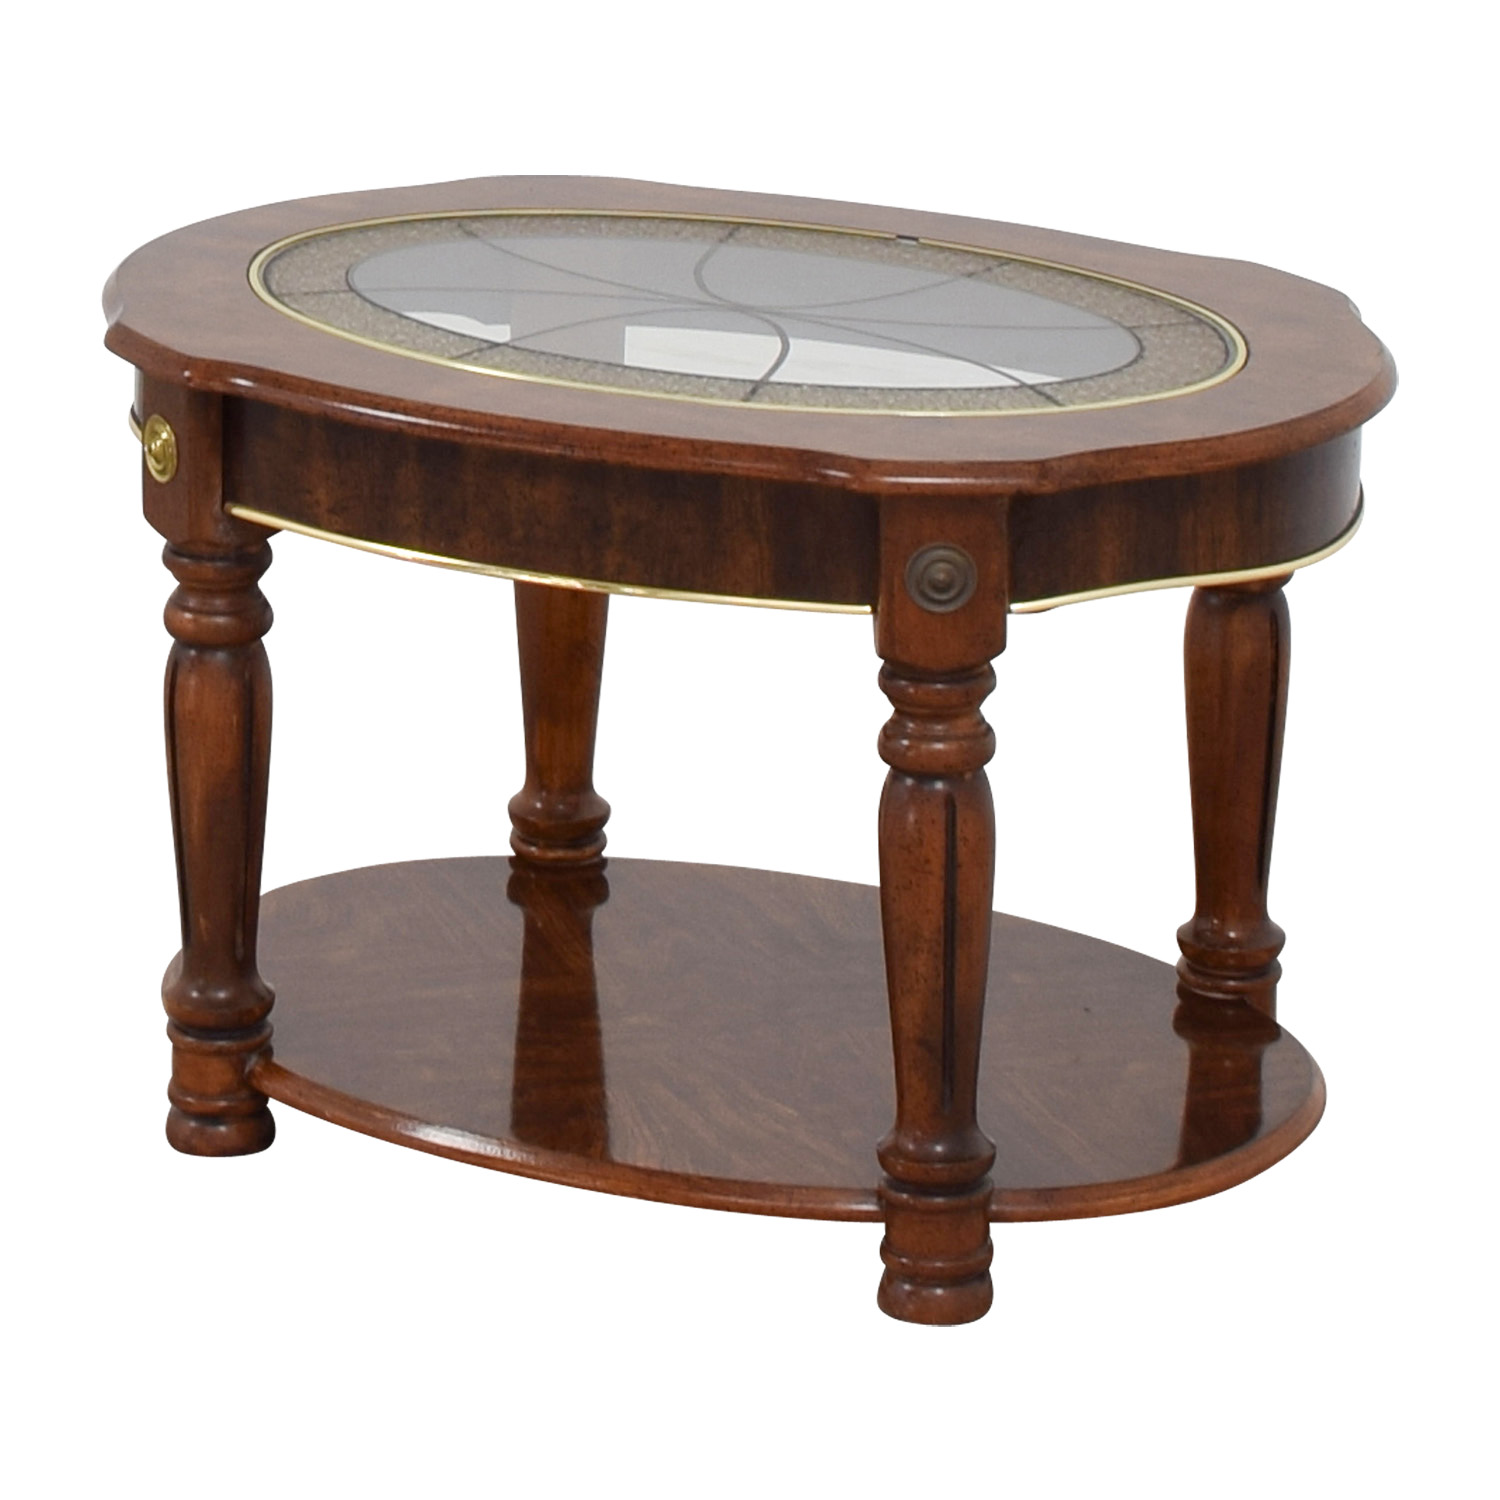 Coffee Tables Images 85 Off Vintage Small Round Coffee Table Tables